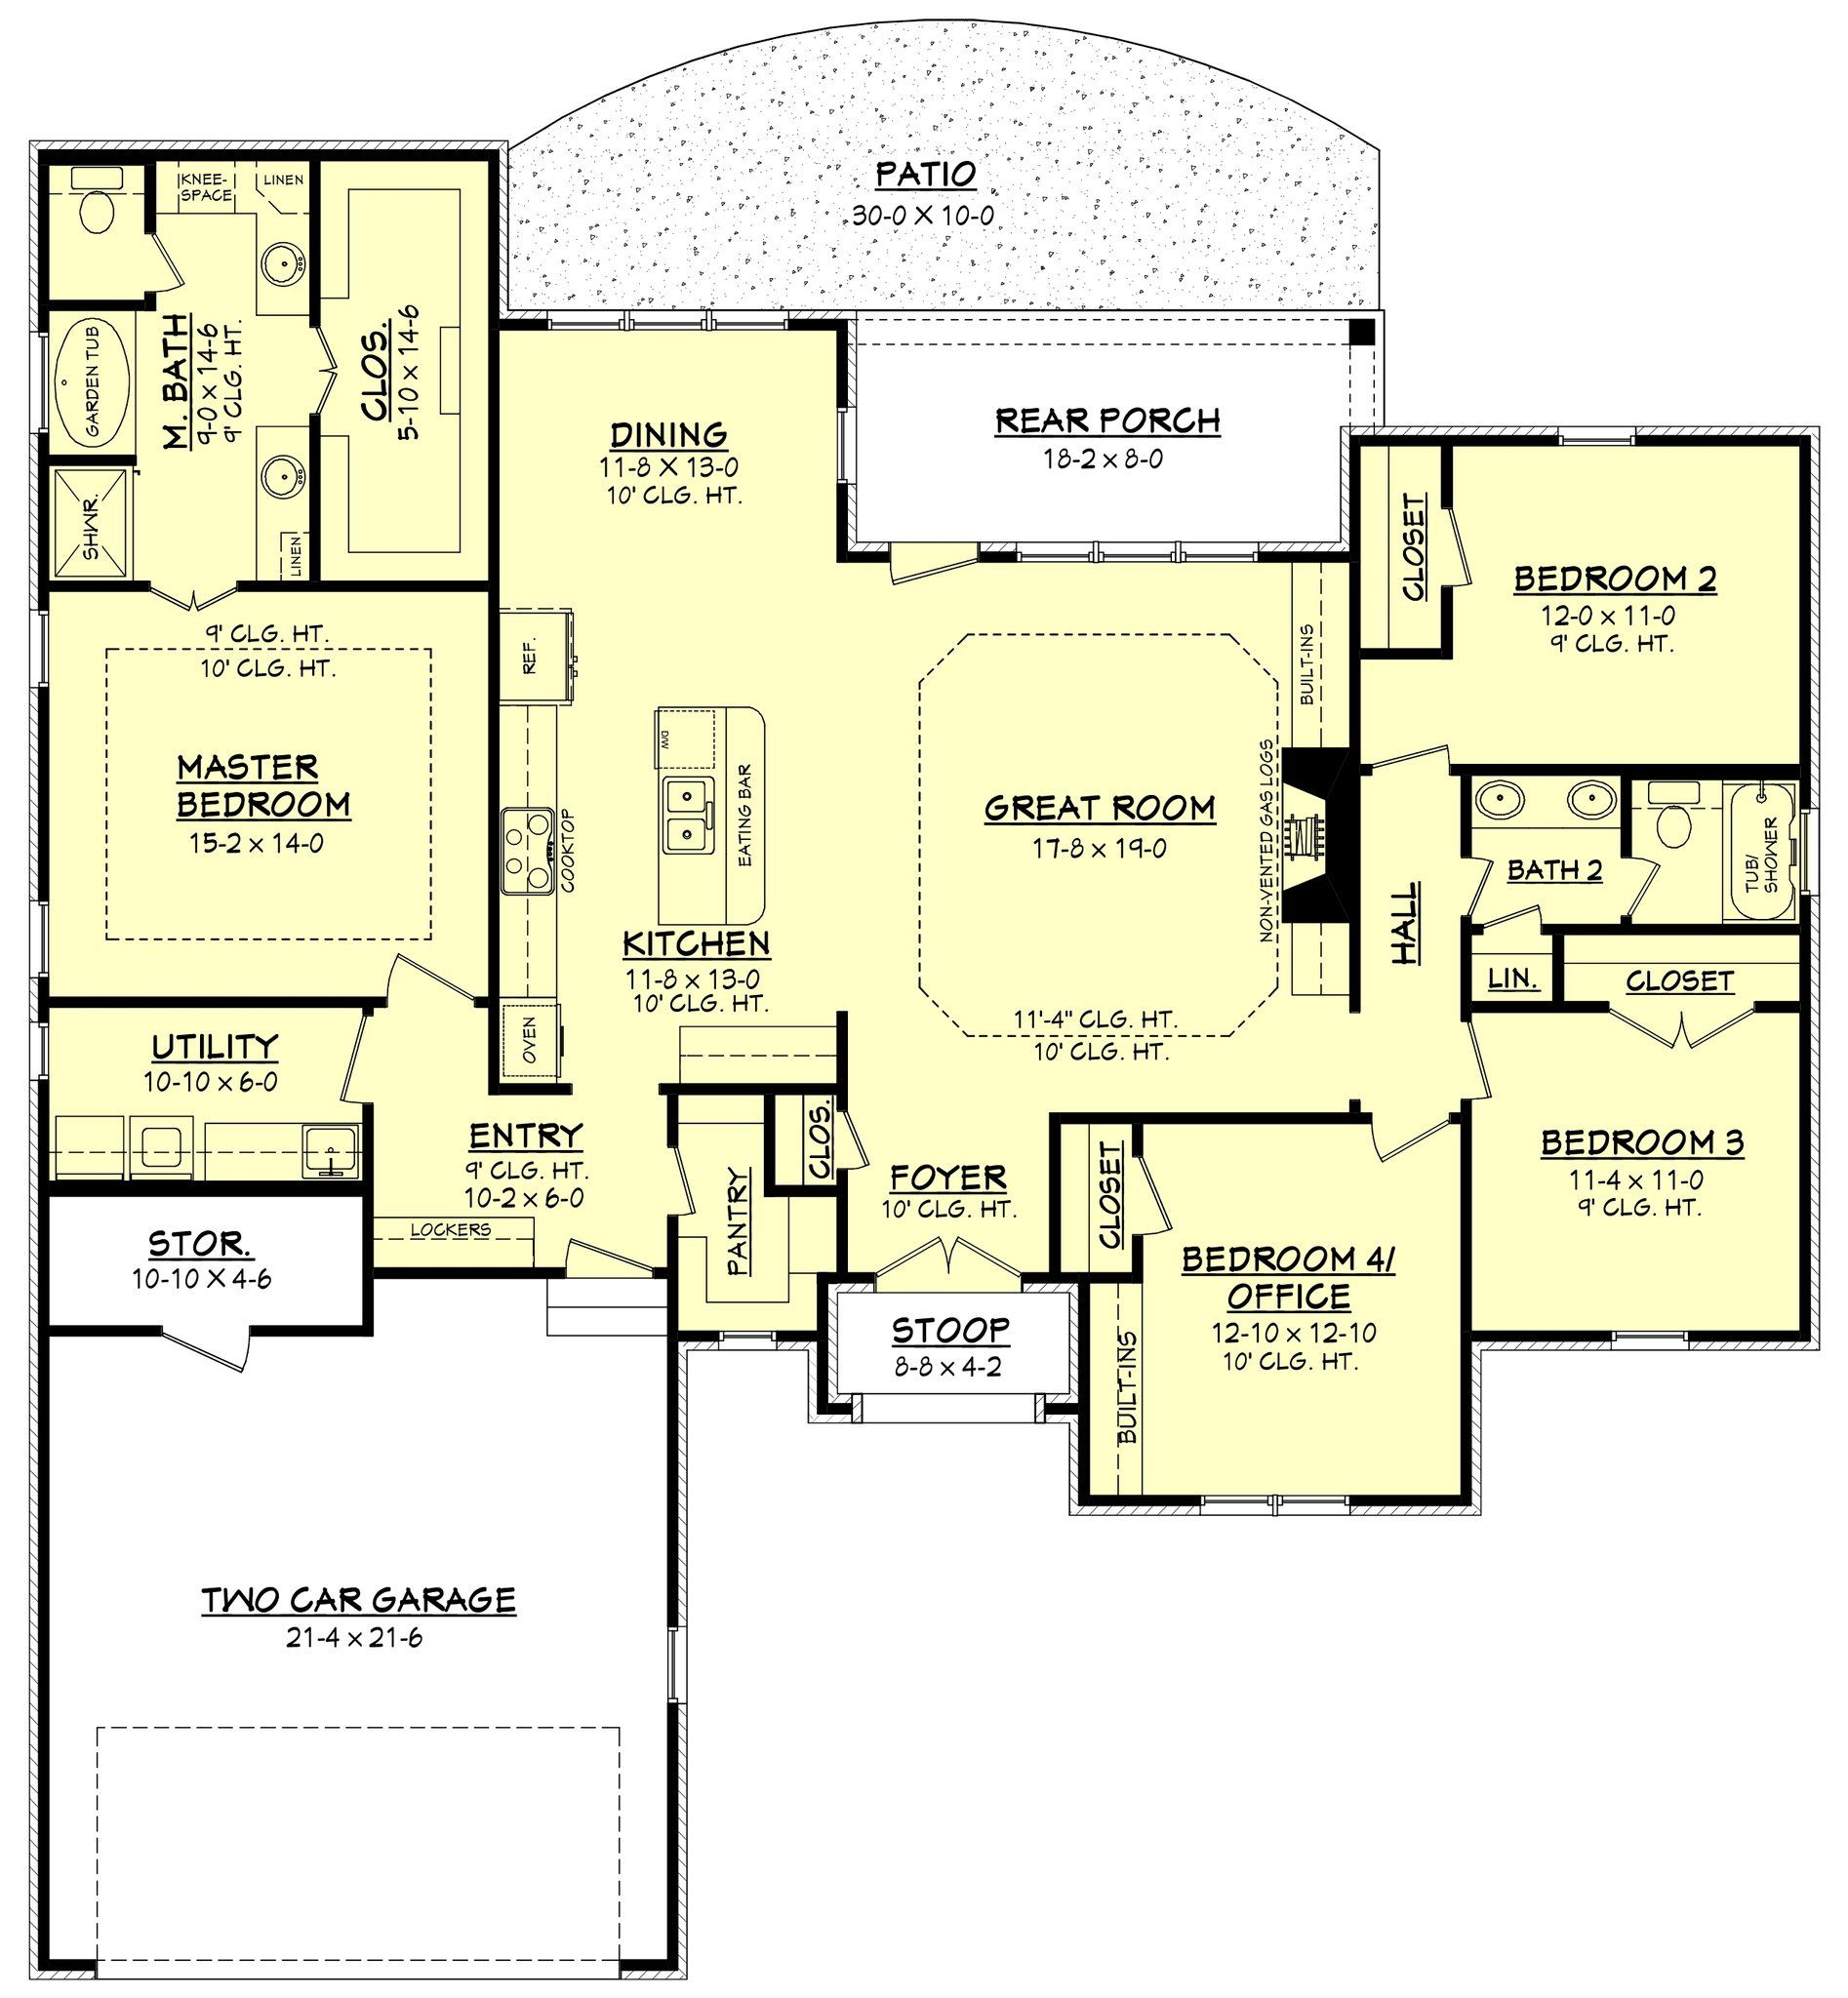 Bedroom Floor Layout Clear Creek Ii House Plan For The Home House Plans 4